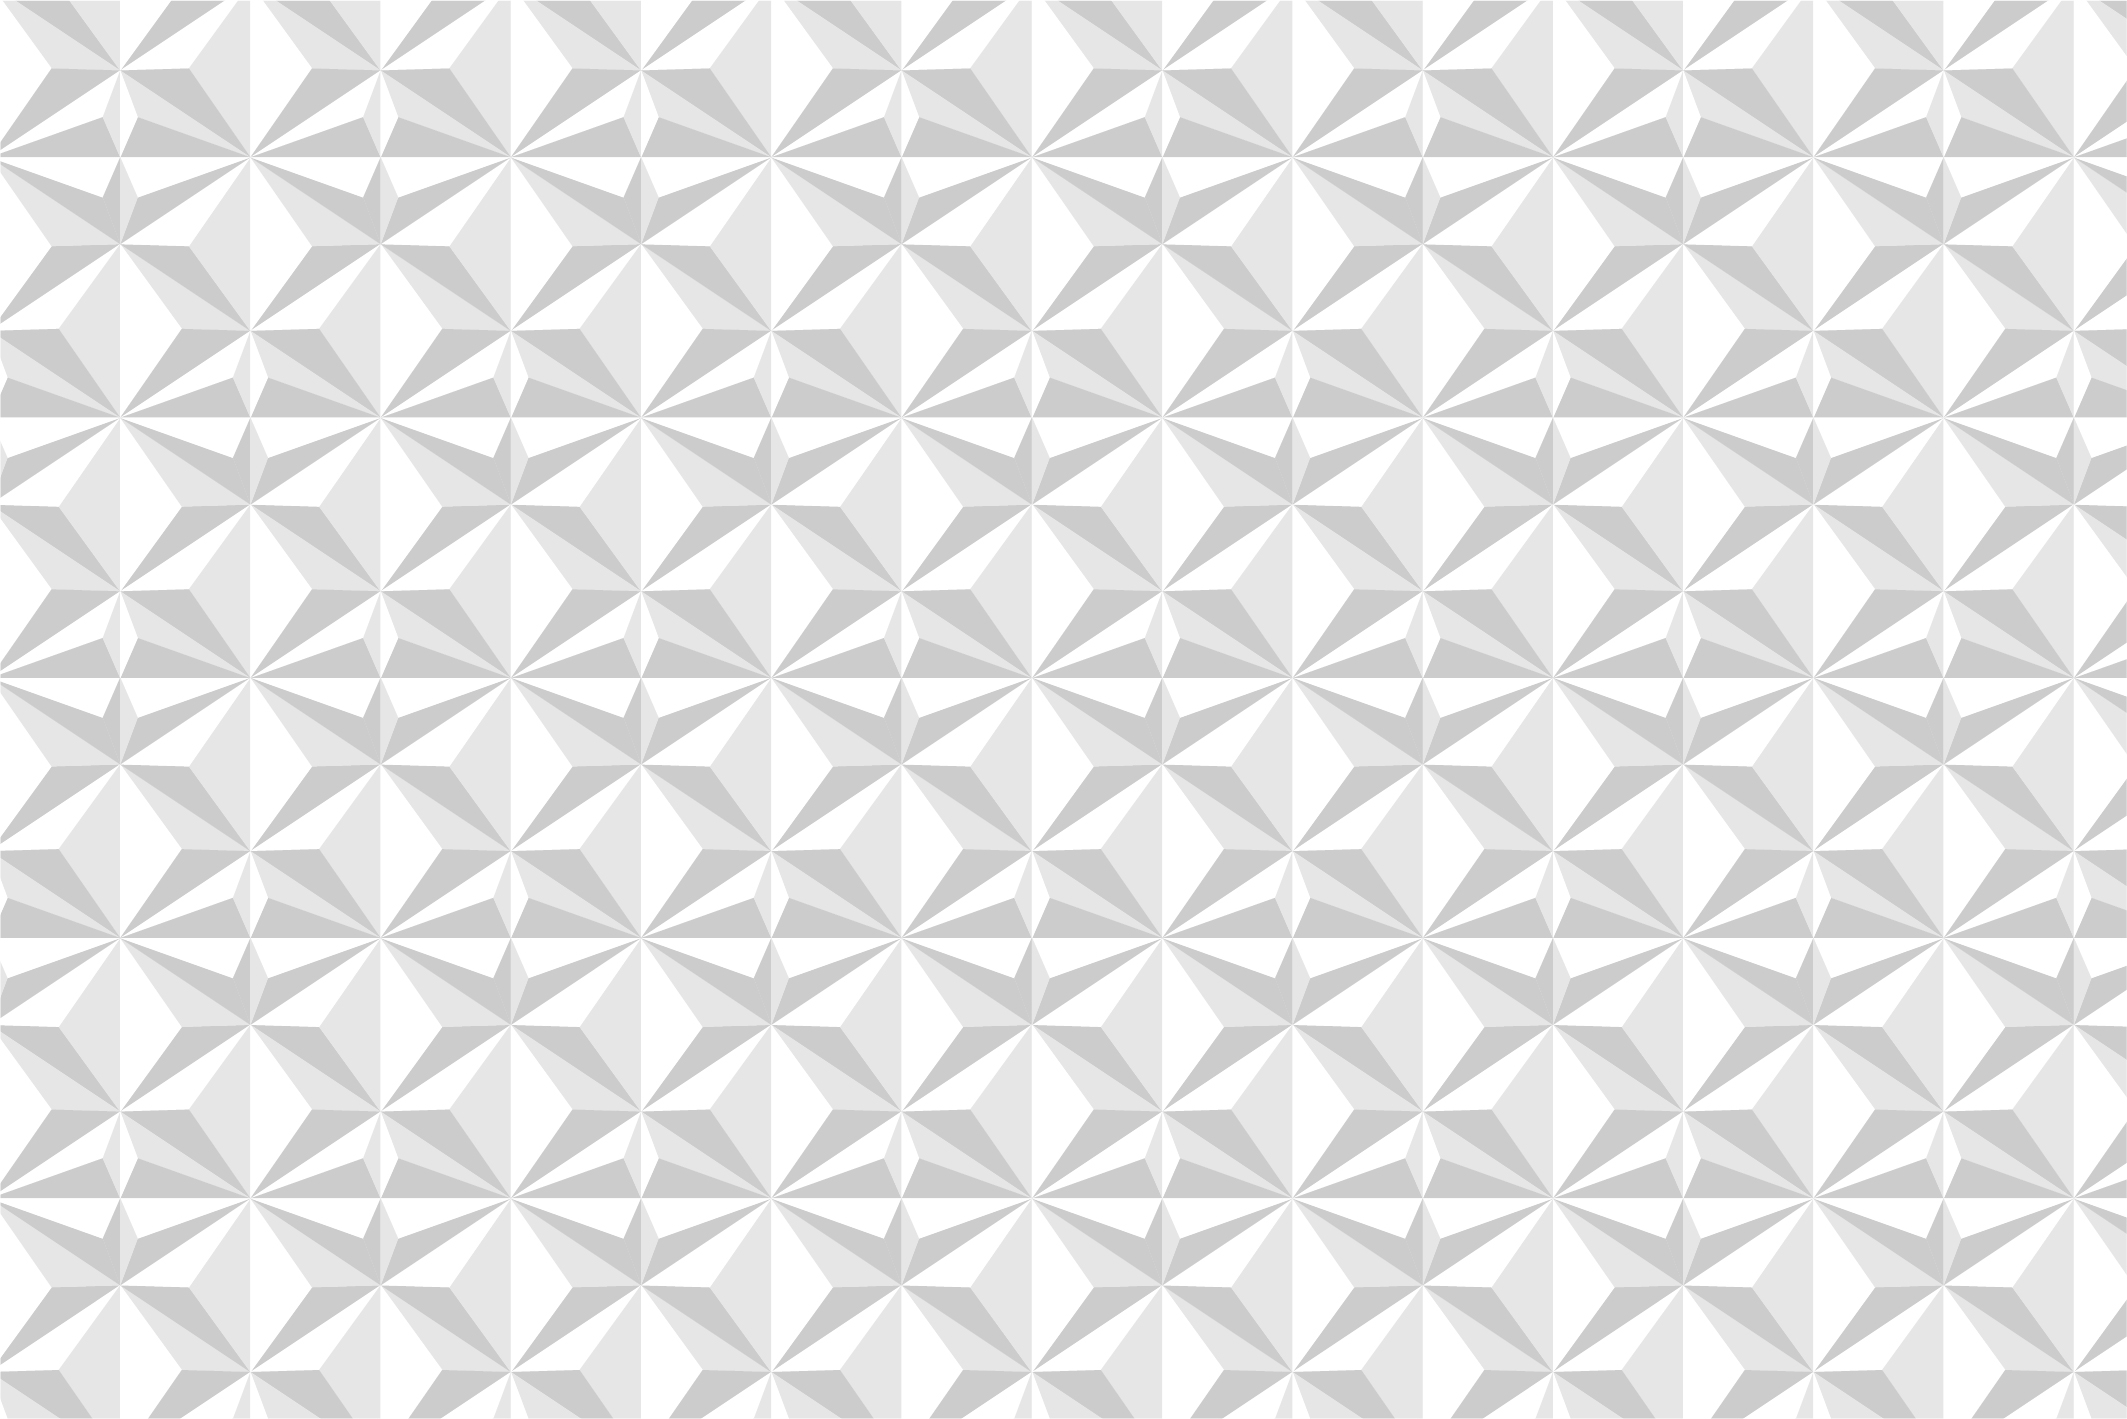 White decorative seamless textures example image 9